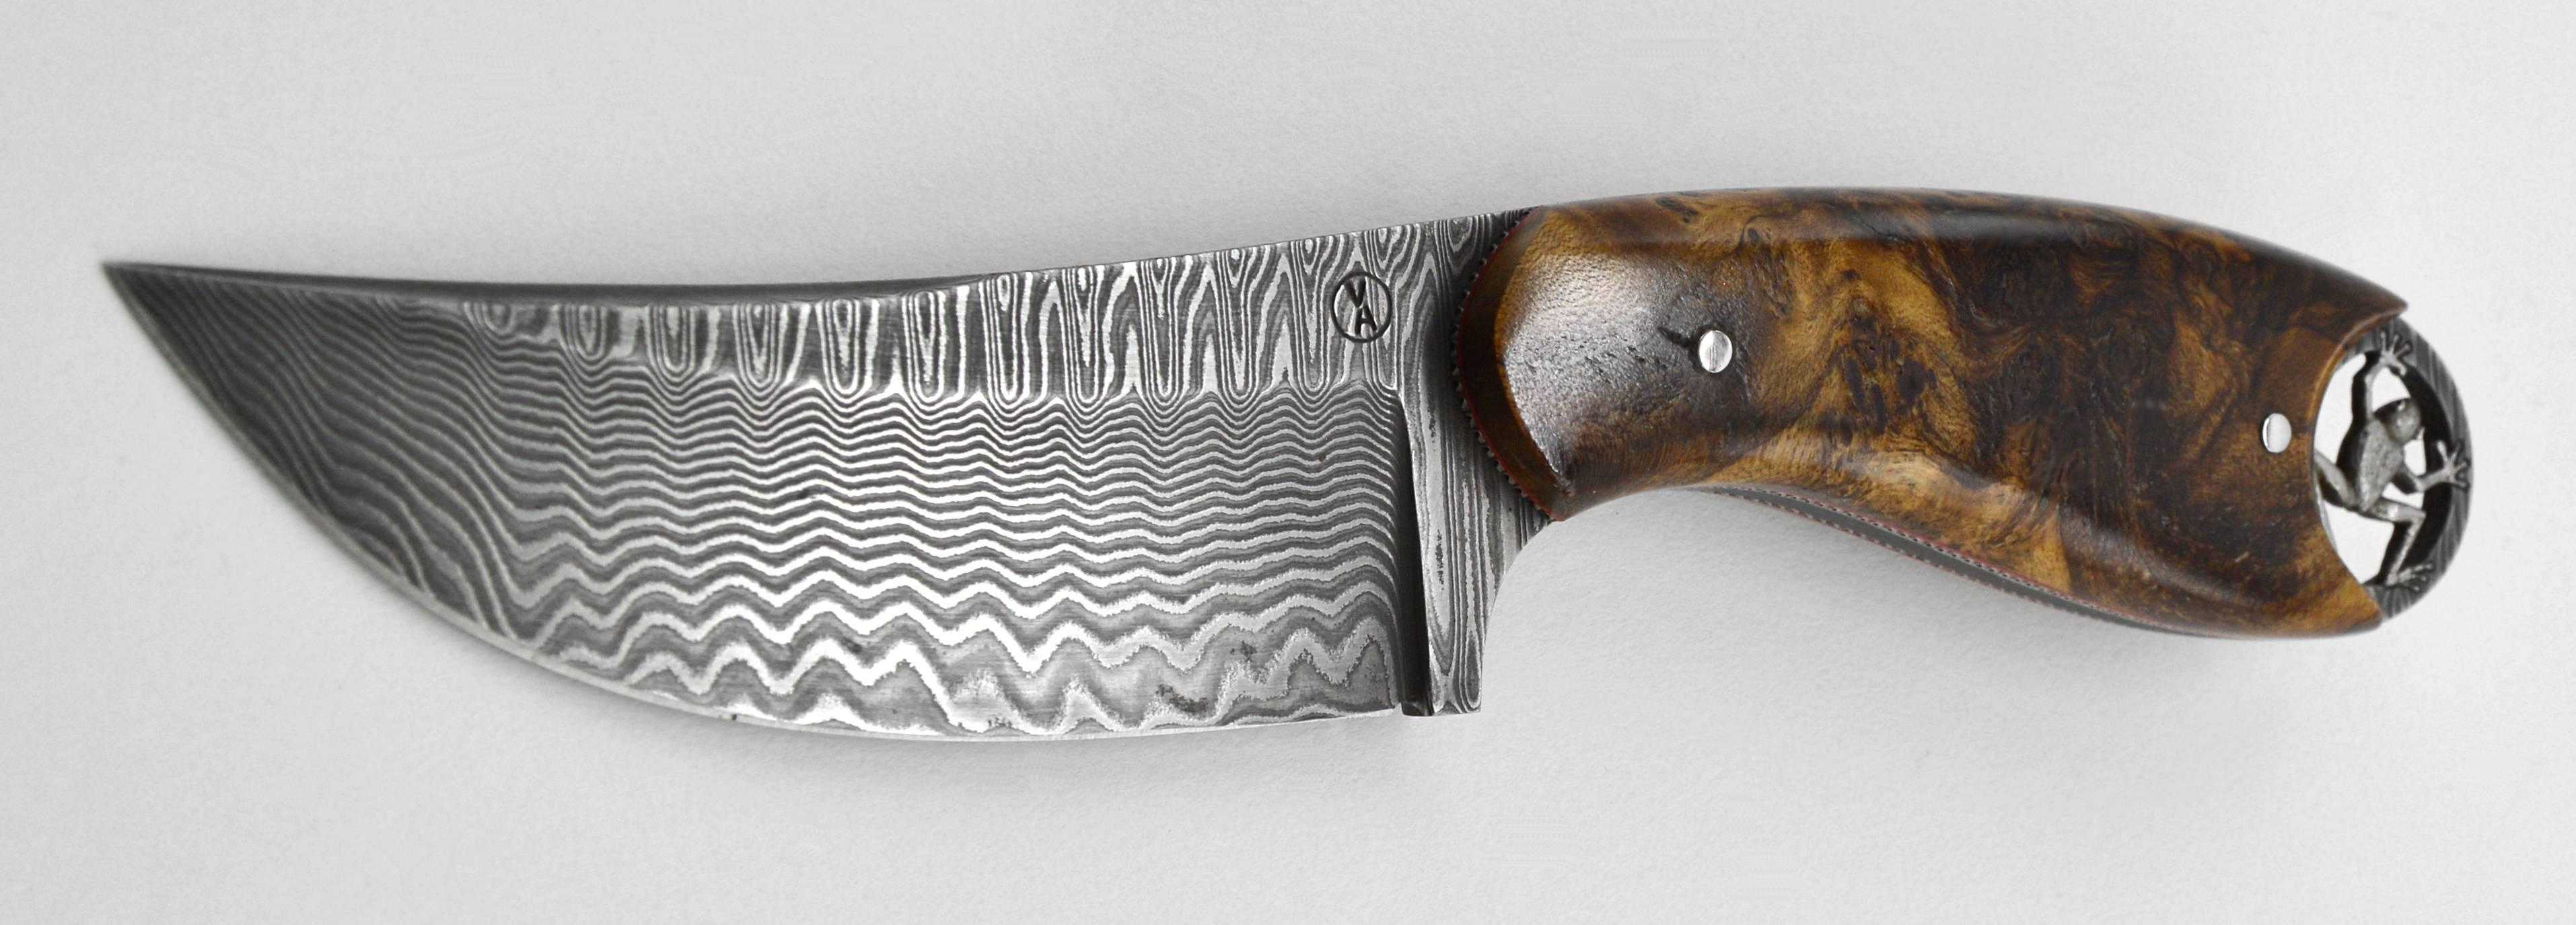 kitchen images bladesmithing integral chef knives in progression forged great jaguar october forging gallery